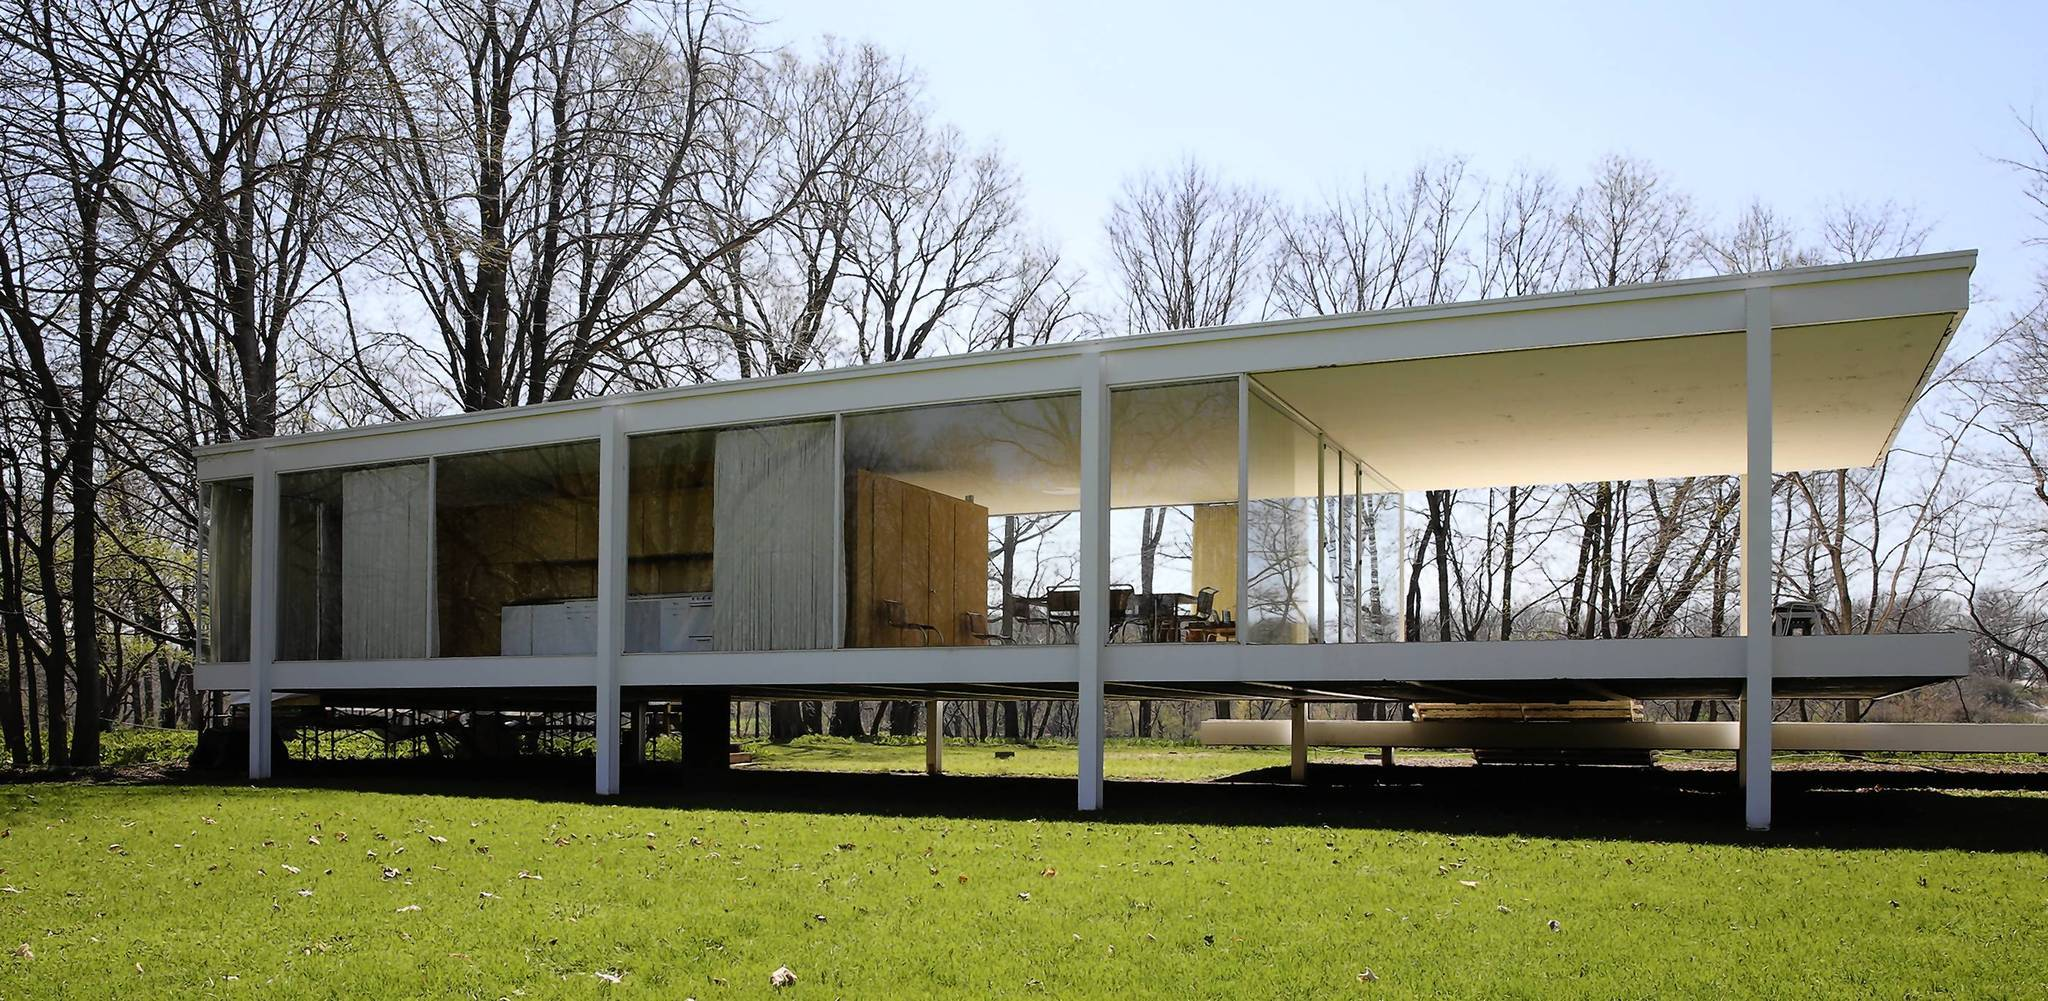 Trust considers moving Mies van der Rohe home on the Fox River ...